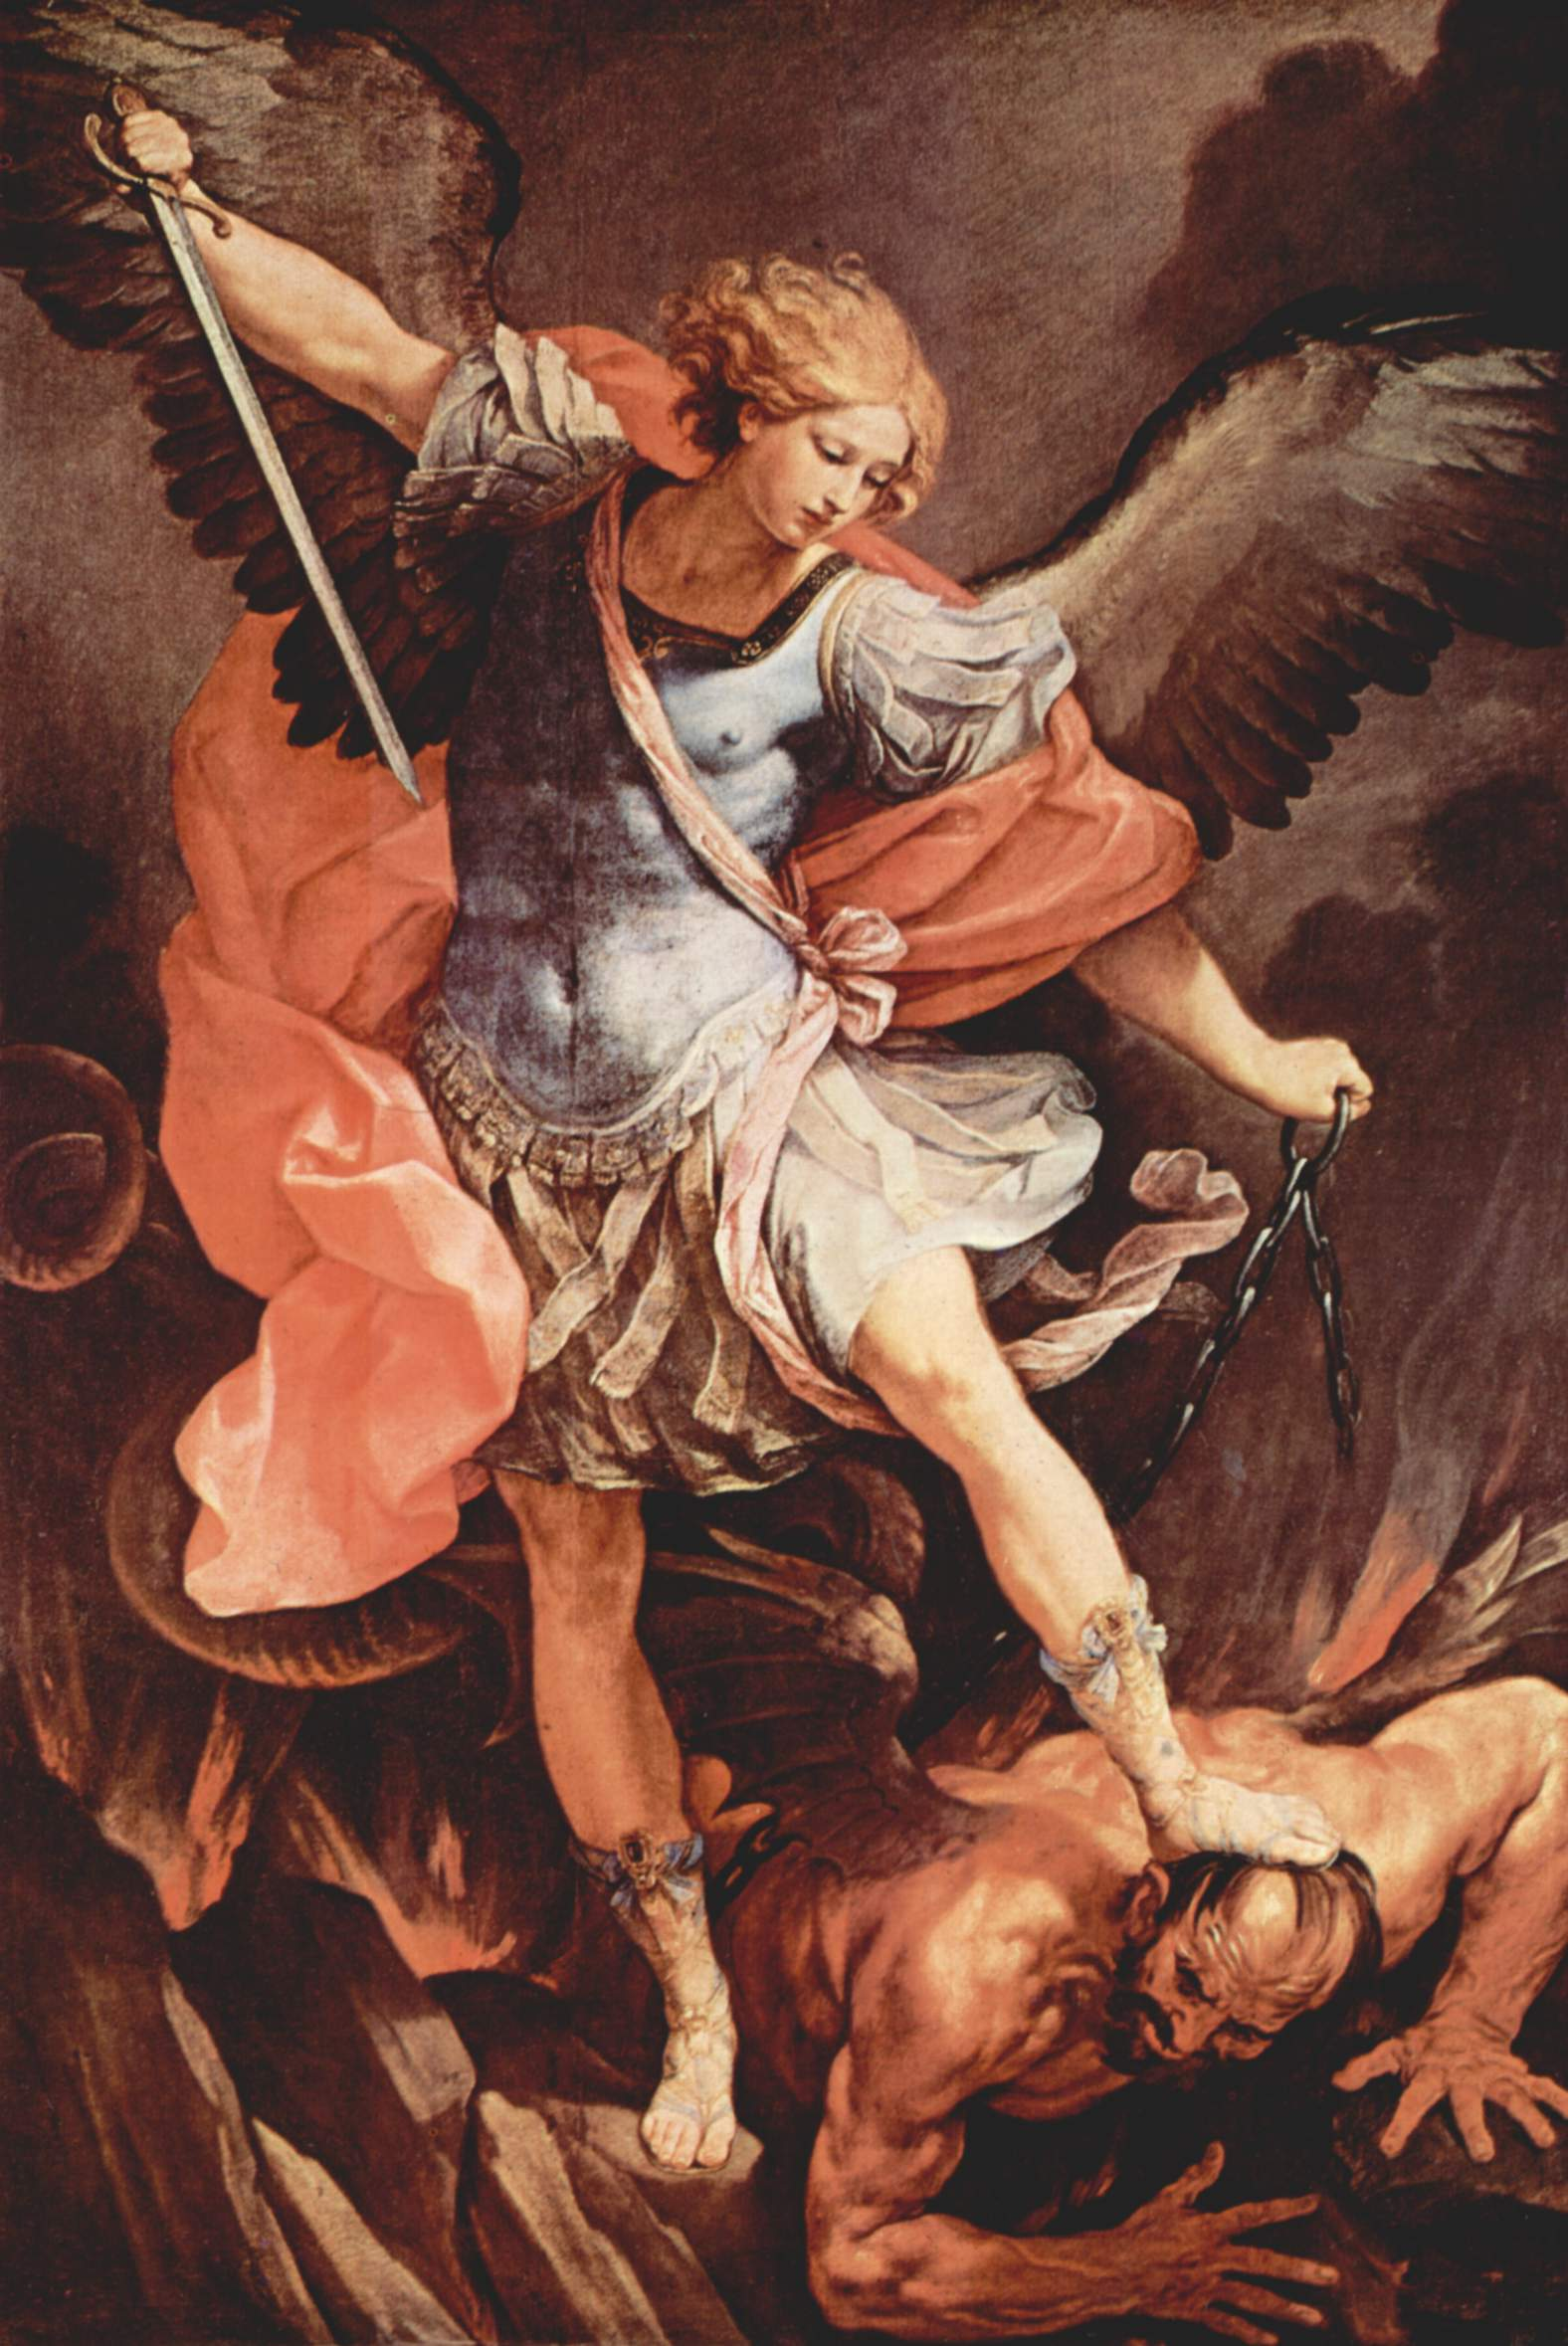 Michael and Satan by Guido Reni c. 1636